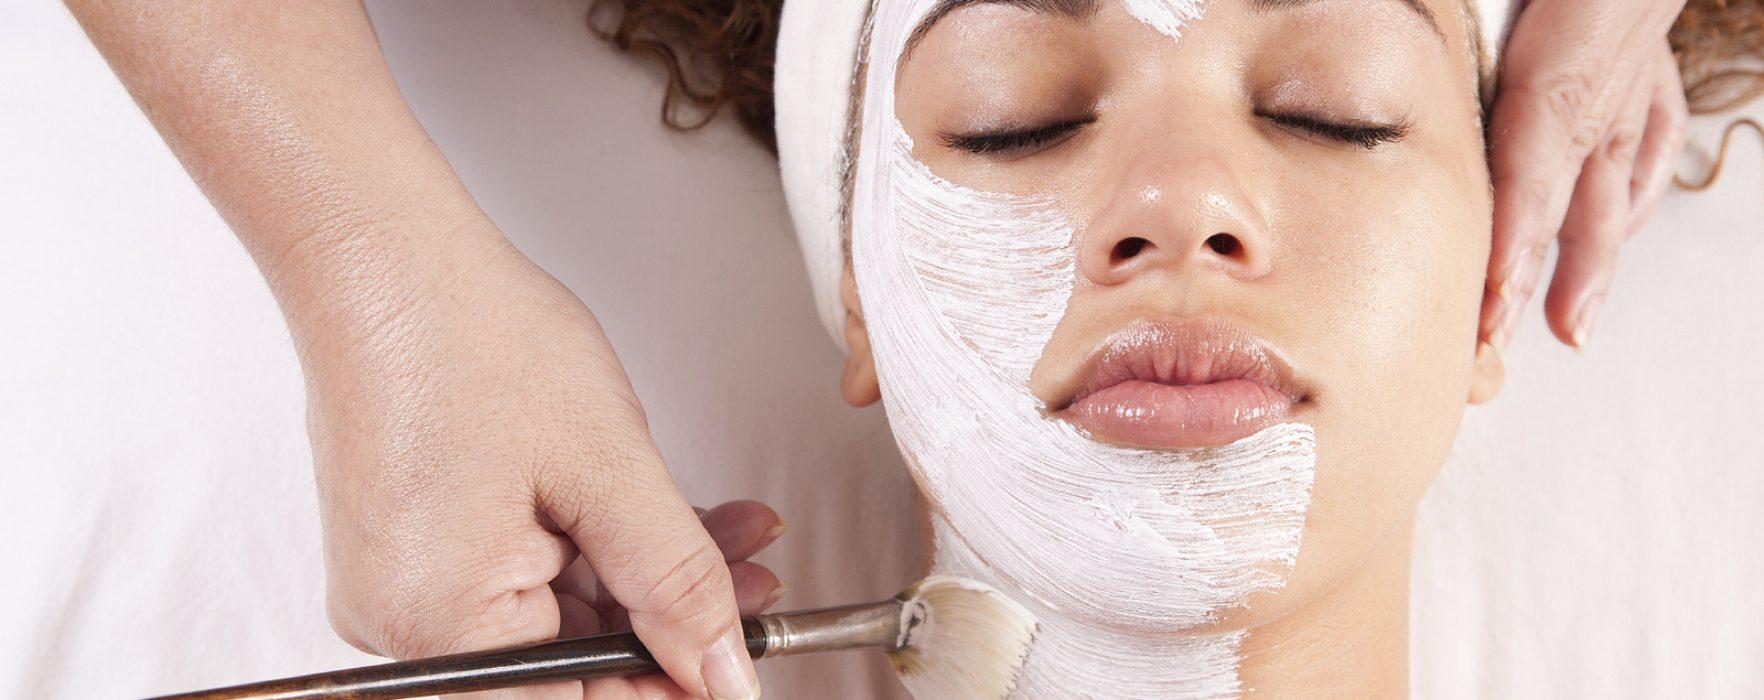 Spot-banishing products everyone should try!